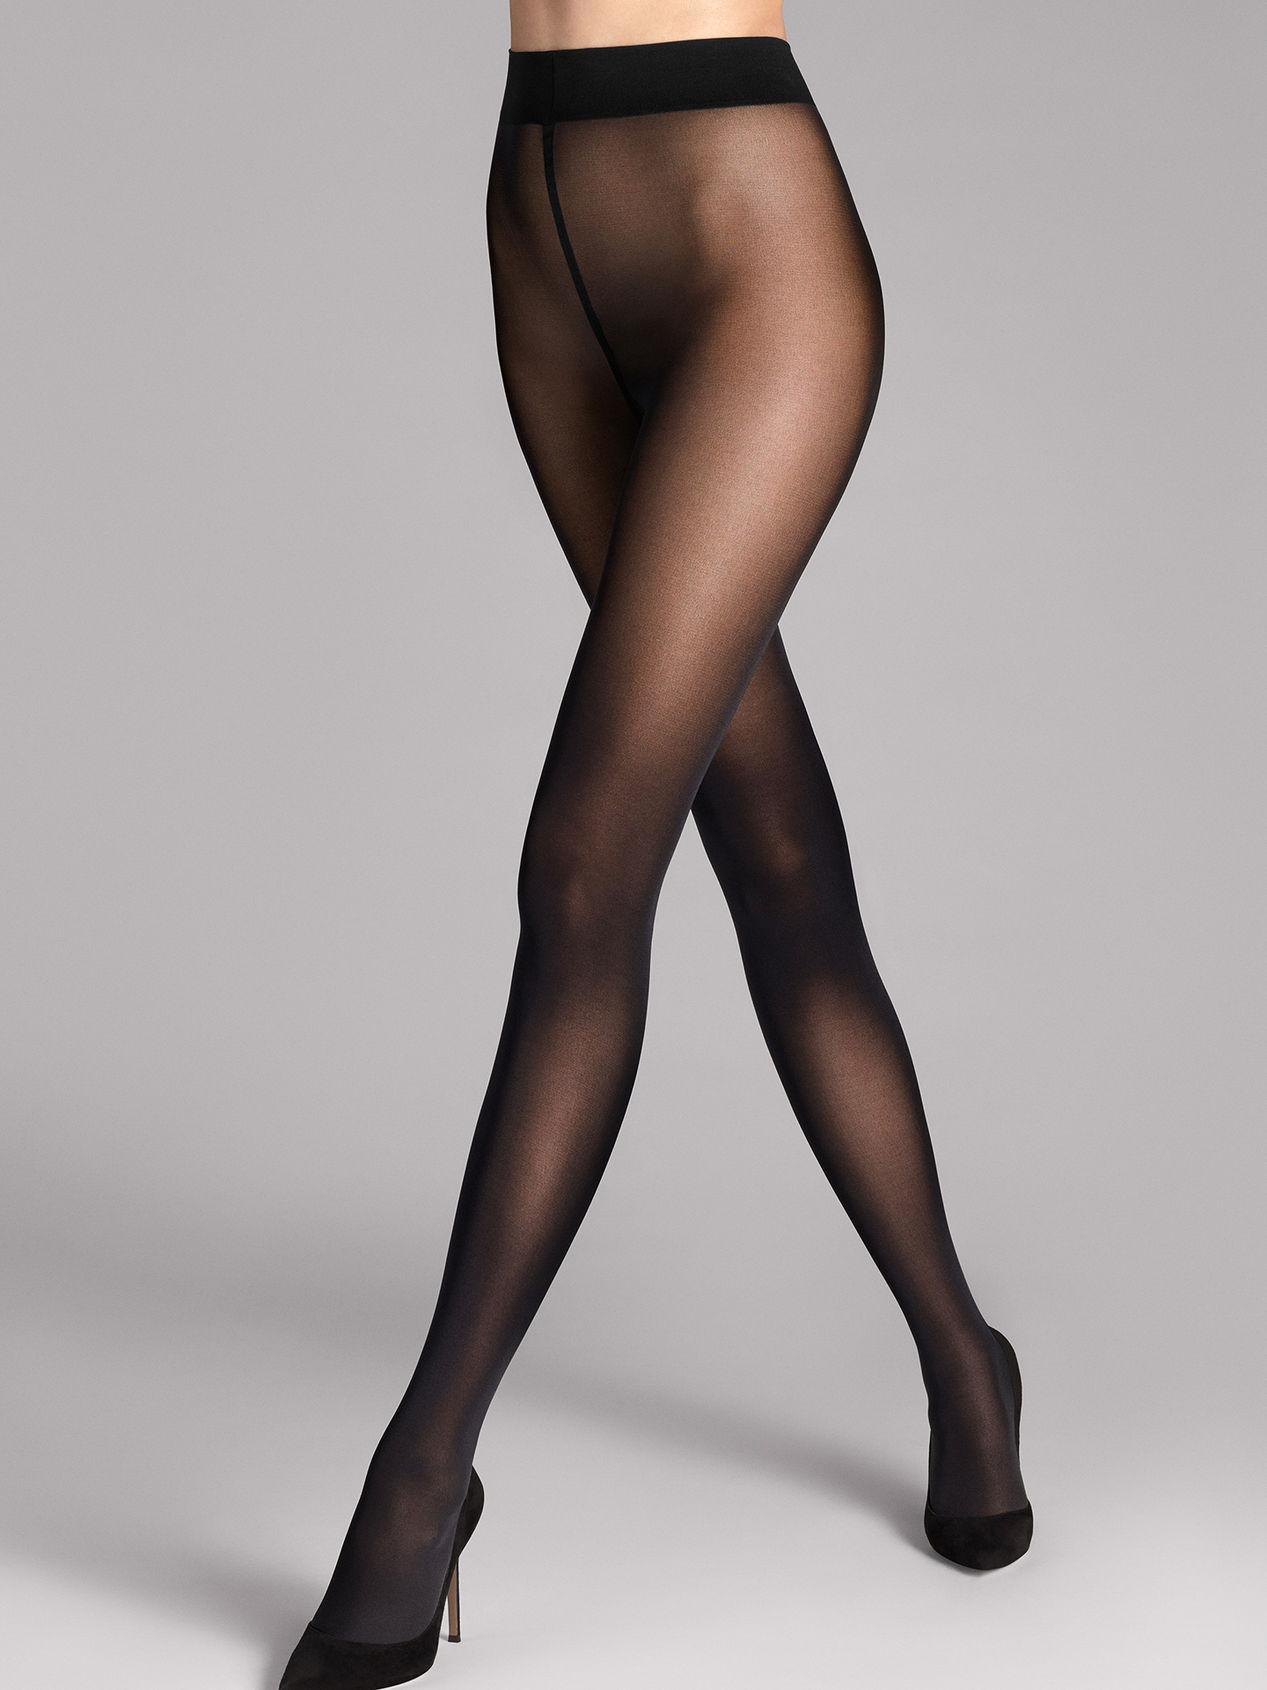 Why are tights so unpopular in the US? : AskWomen